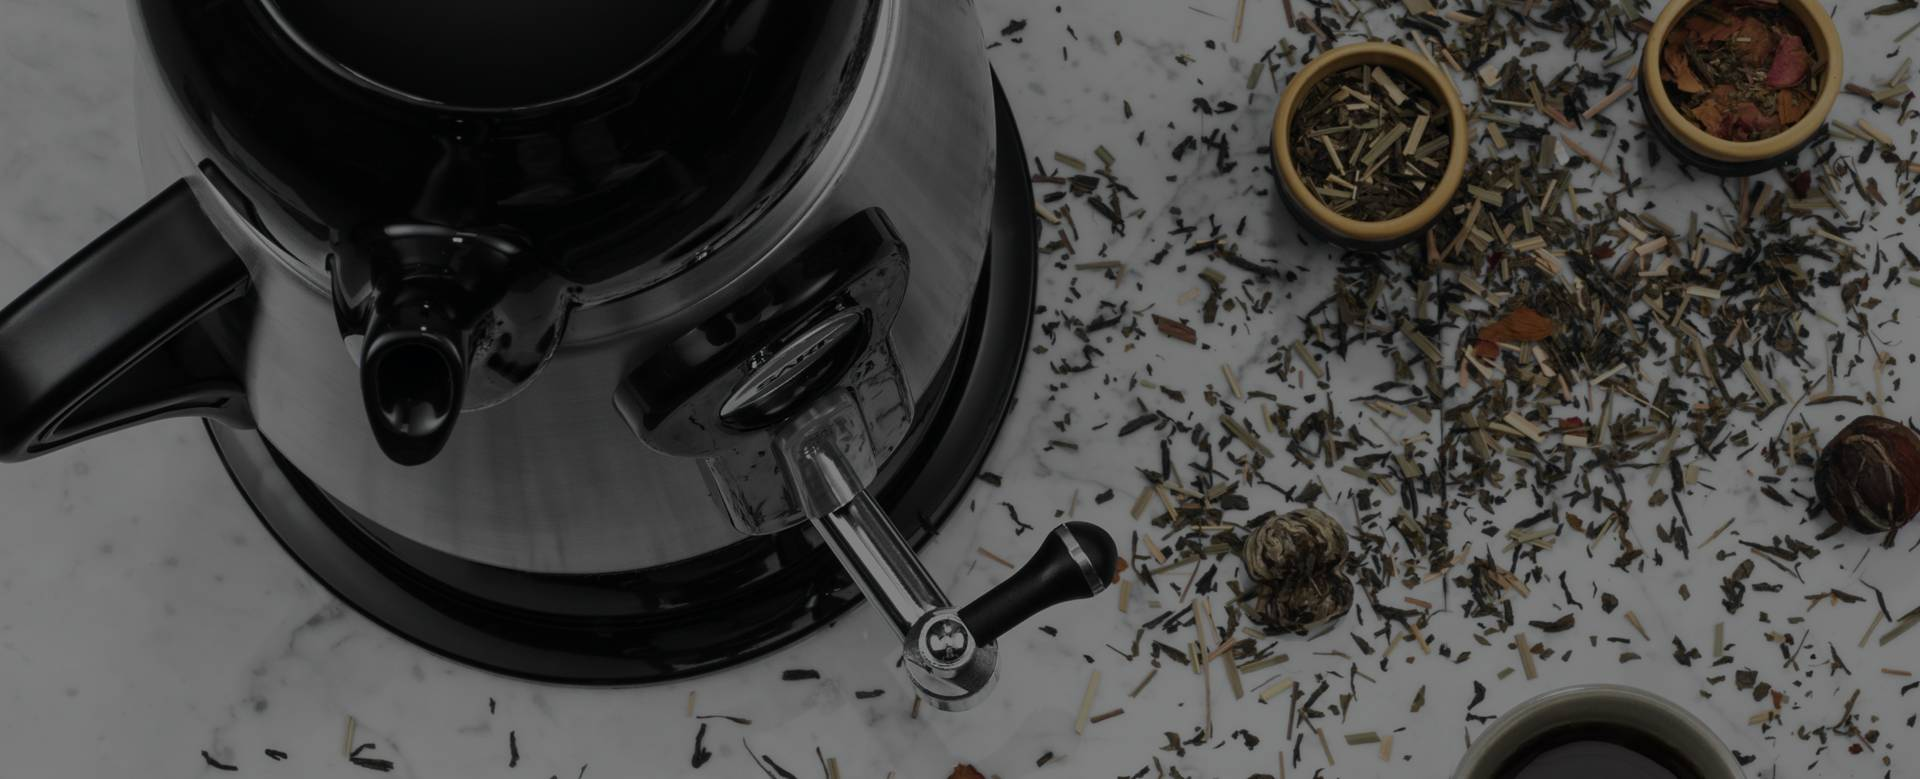 INFUSE YOUR LIFE WITH AROMATIC TEA